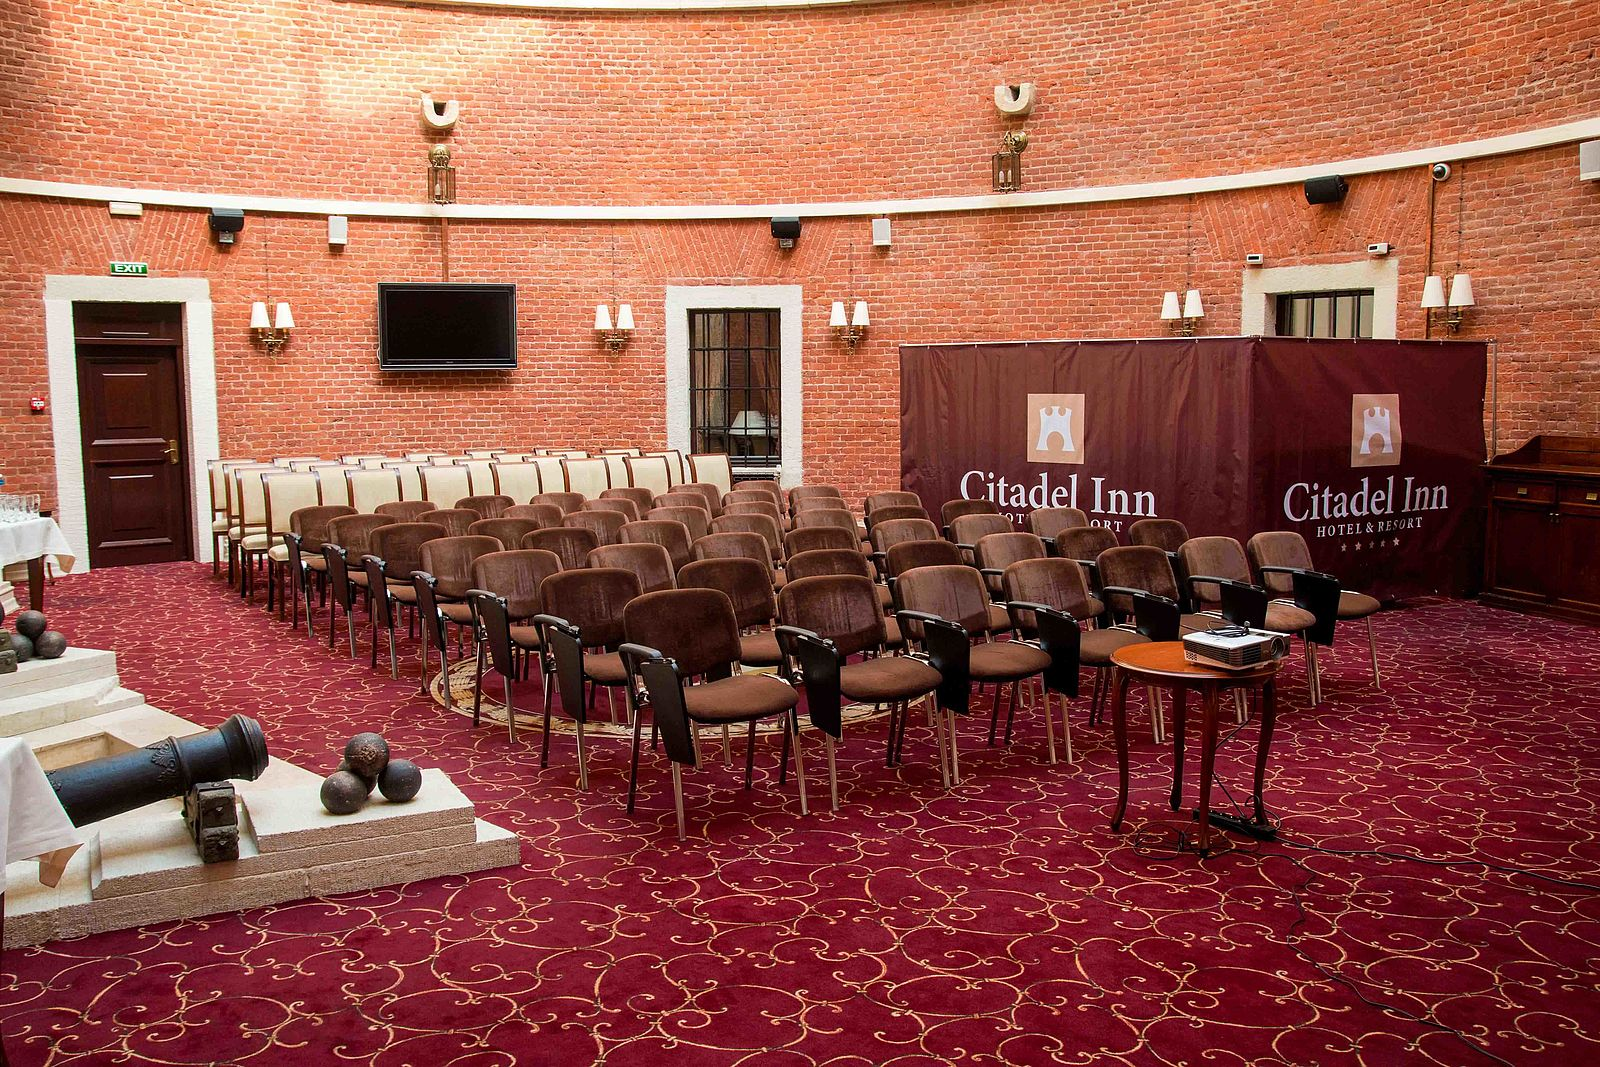 the luxurious and elegant business conference rooms. Luxury Meeting Space - Citadel Inn The Luxurious And Elegant Business Conference Rooms C